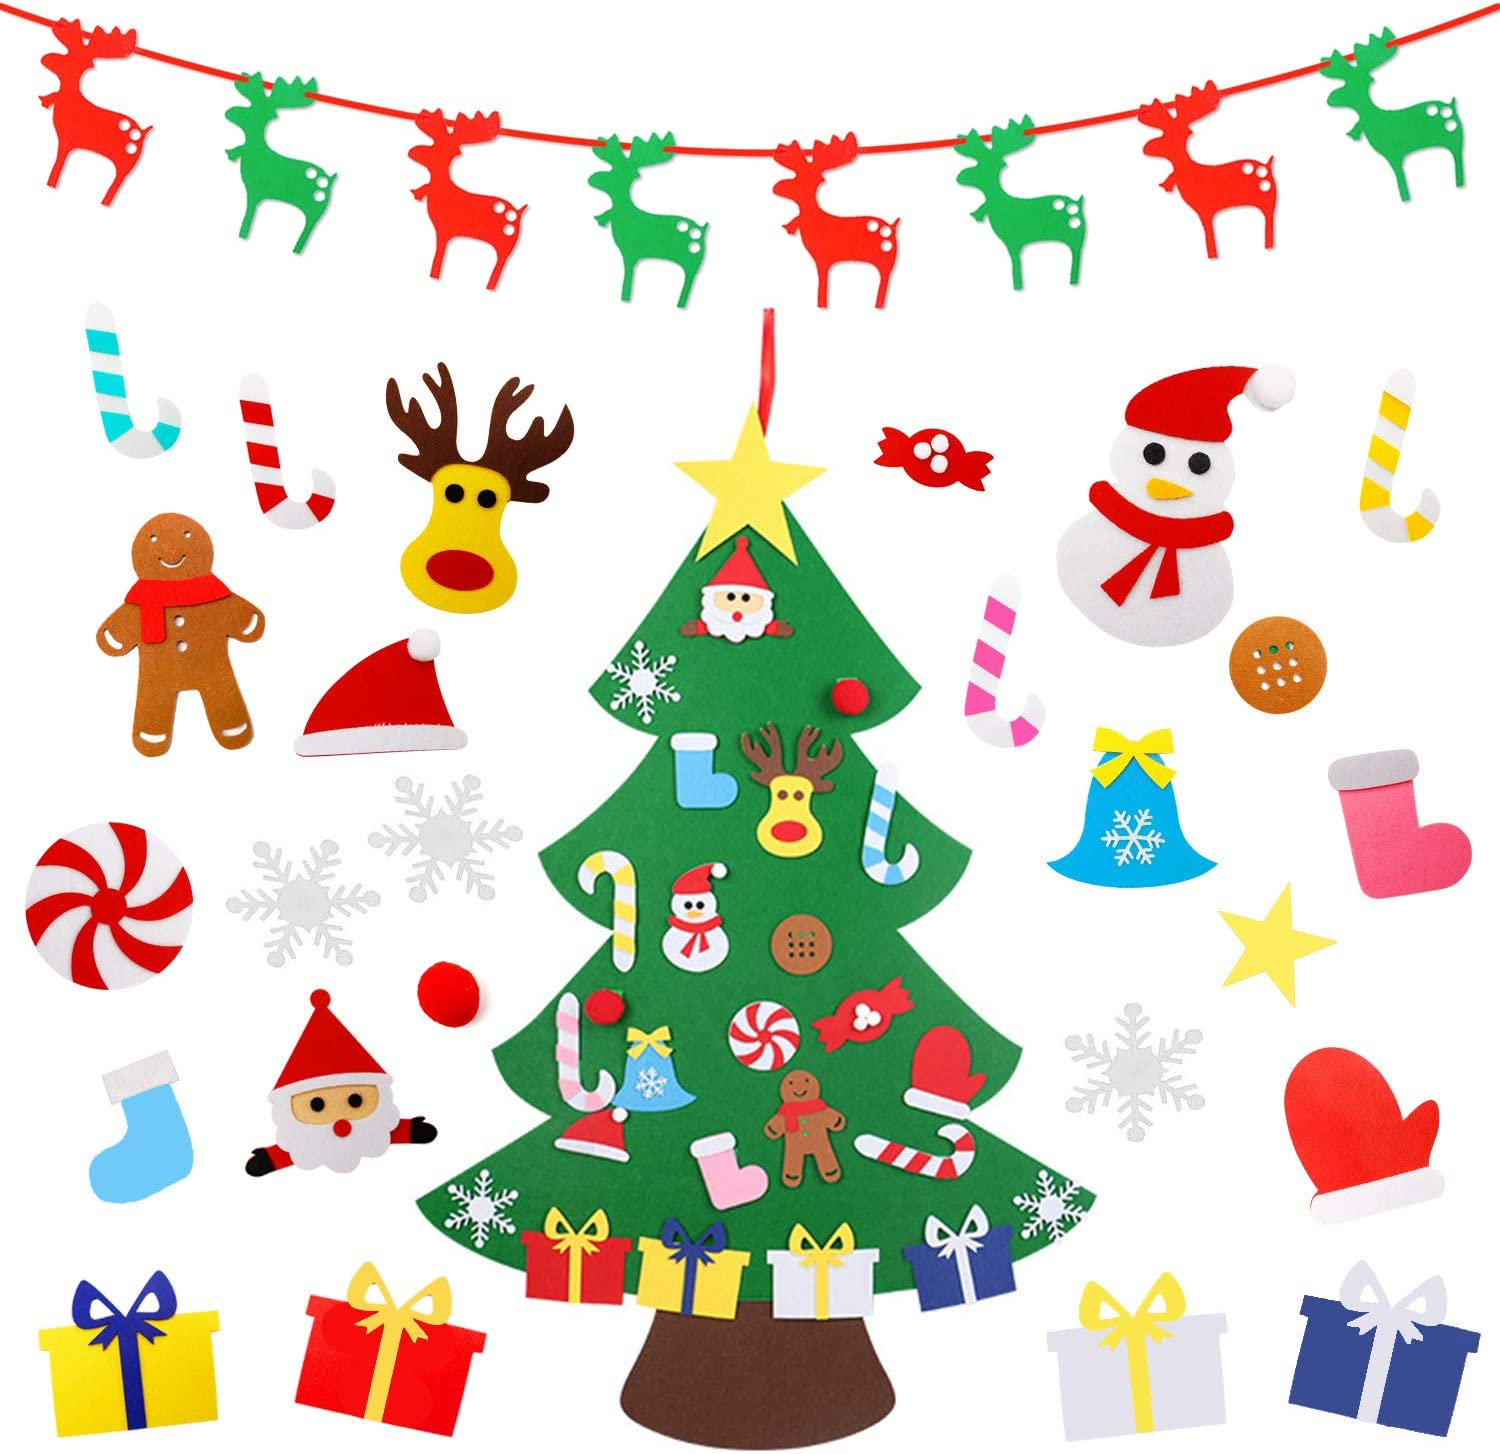 THREEMAO 3 3ft DIY Felt Christmas Tree with 34 Hanging Ornaments New Year Door Wall Hanging Decorations Christmas Decor or Kids Xmas Gifts